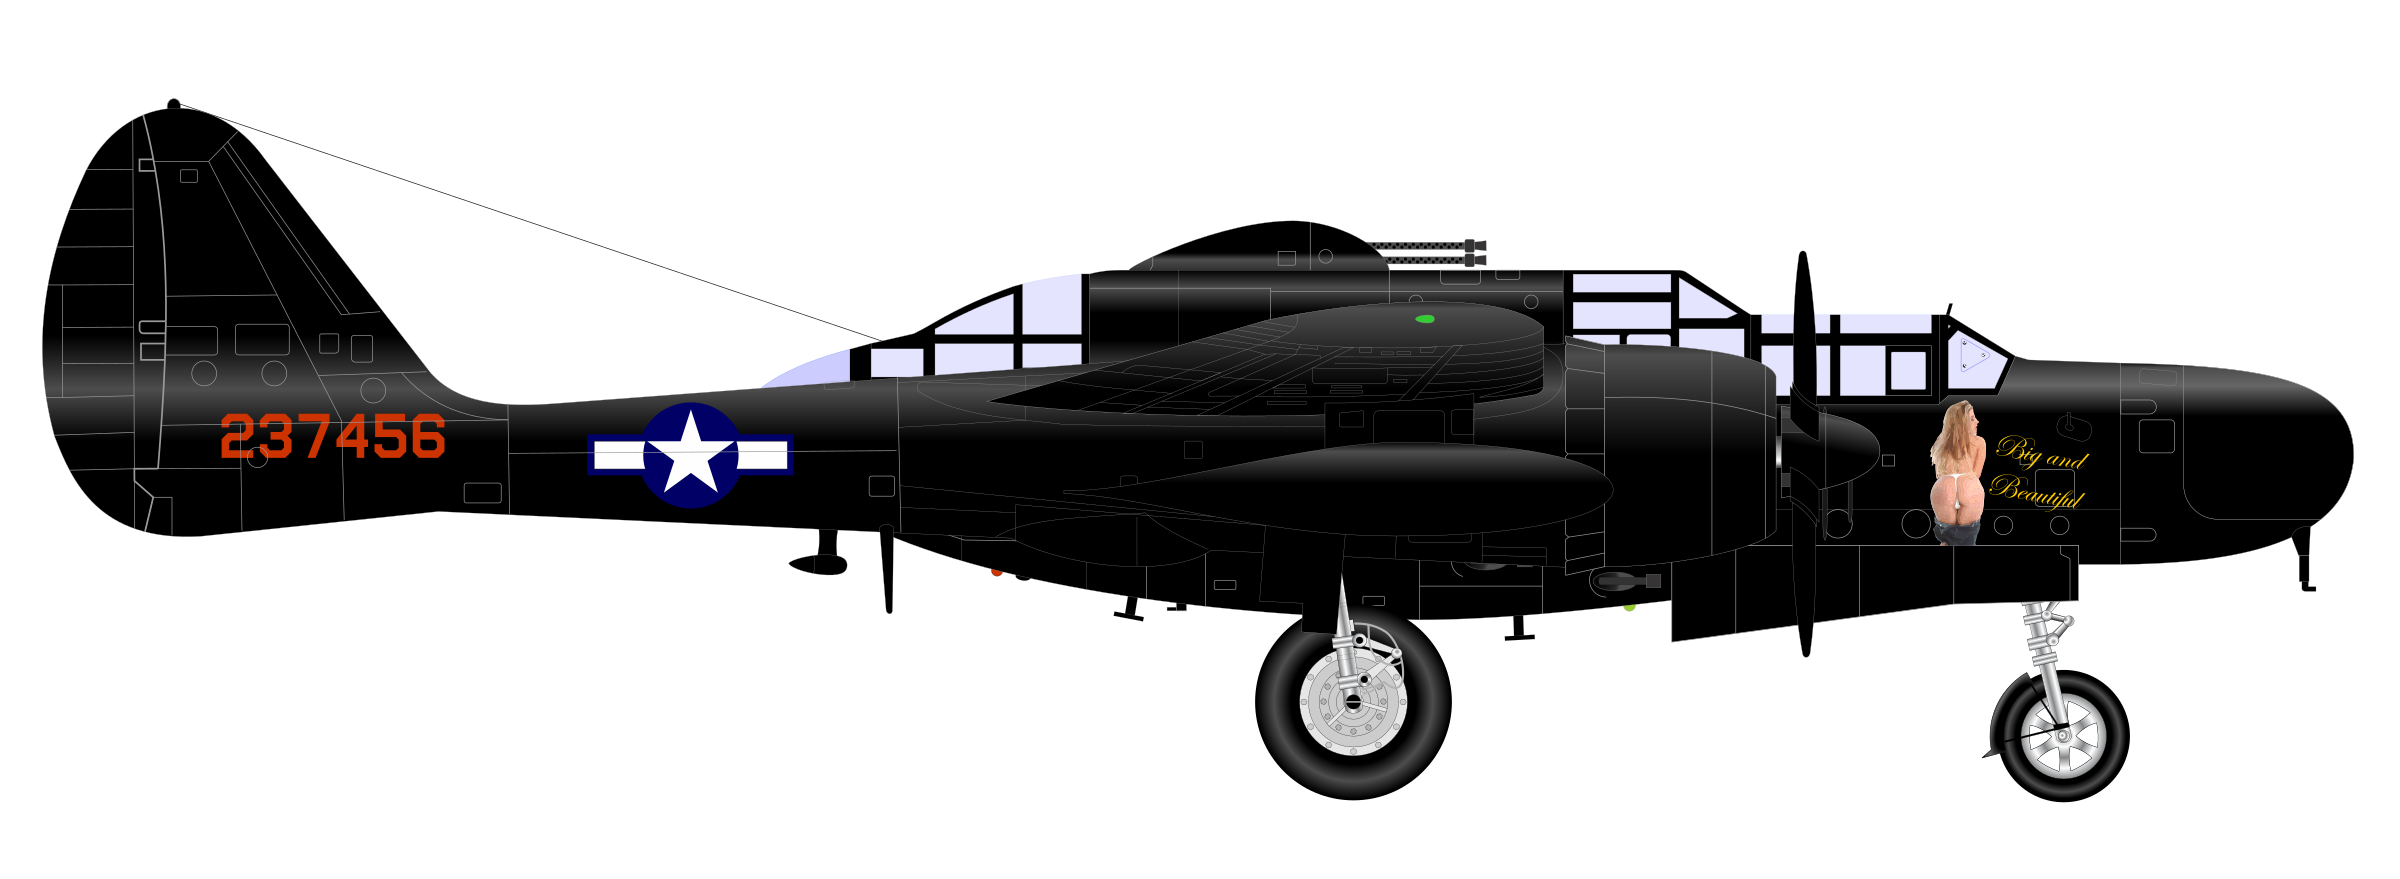 Free to Use & Public Domain Military Aircraft Clip Art.